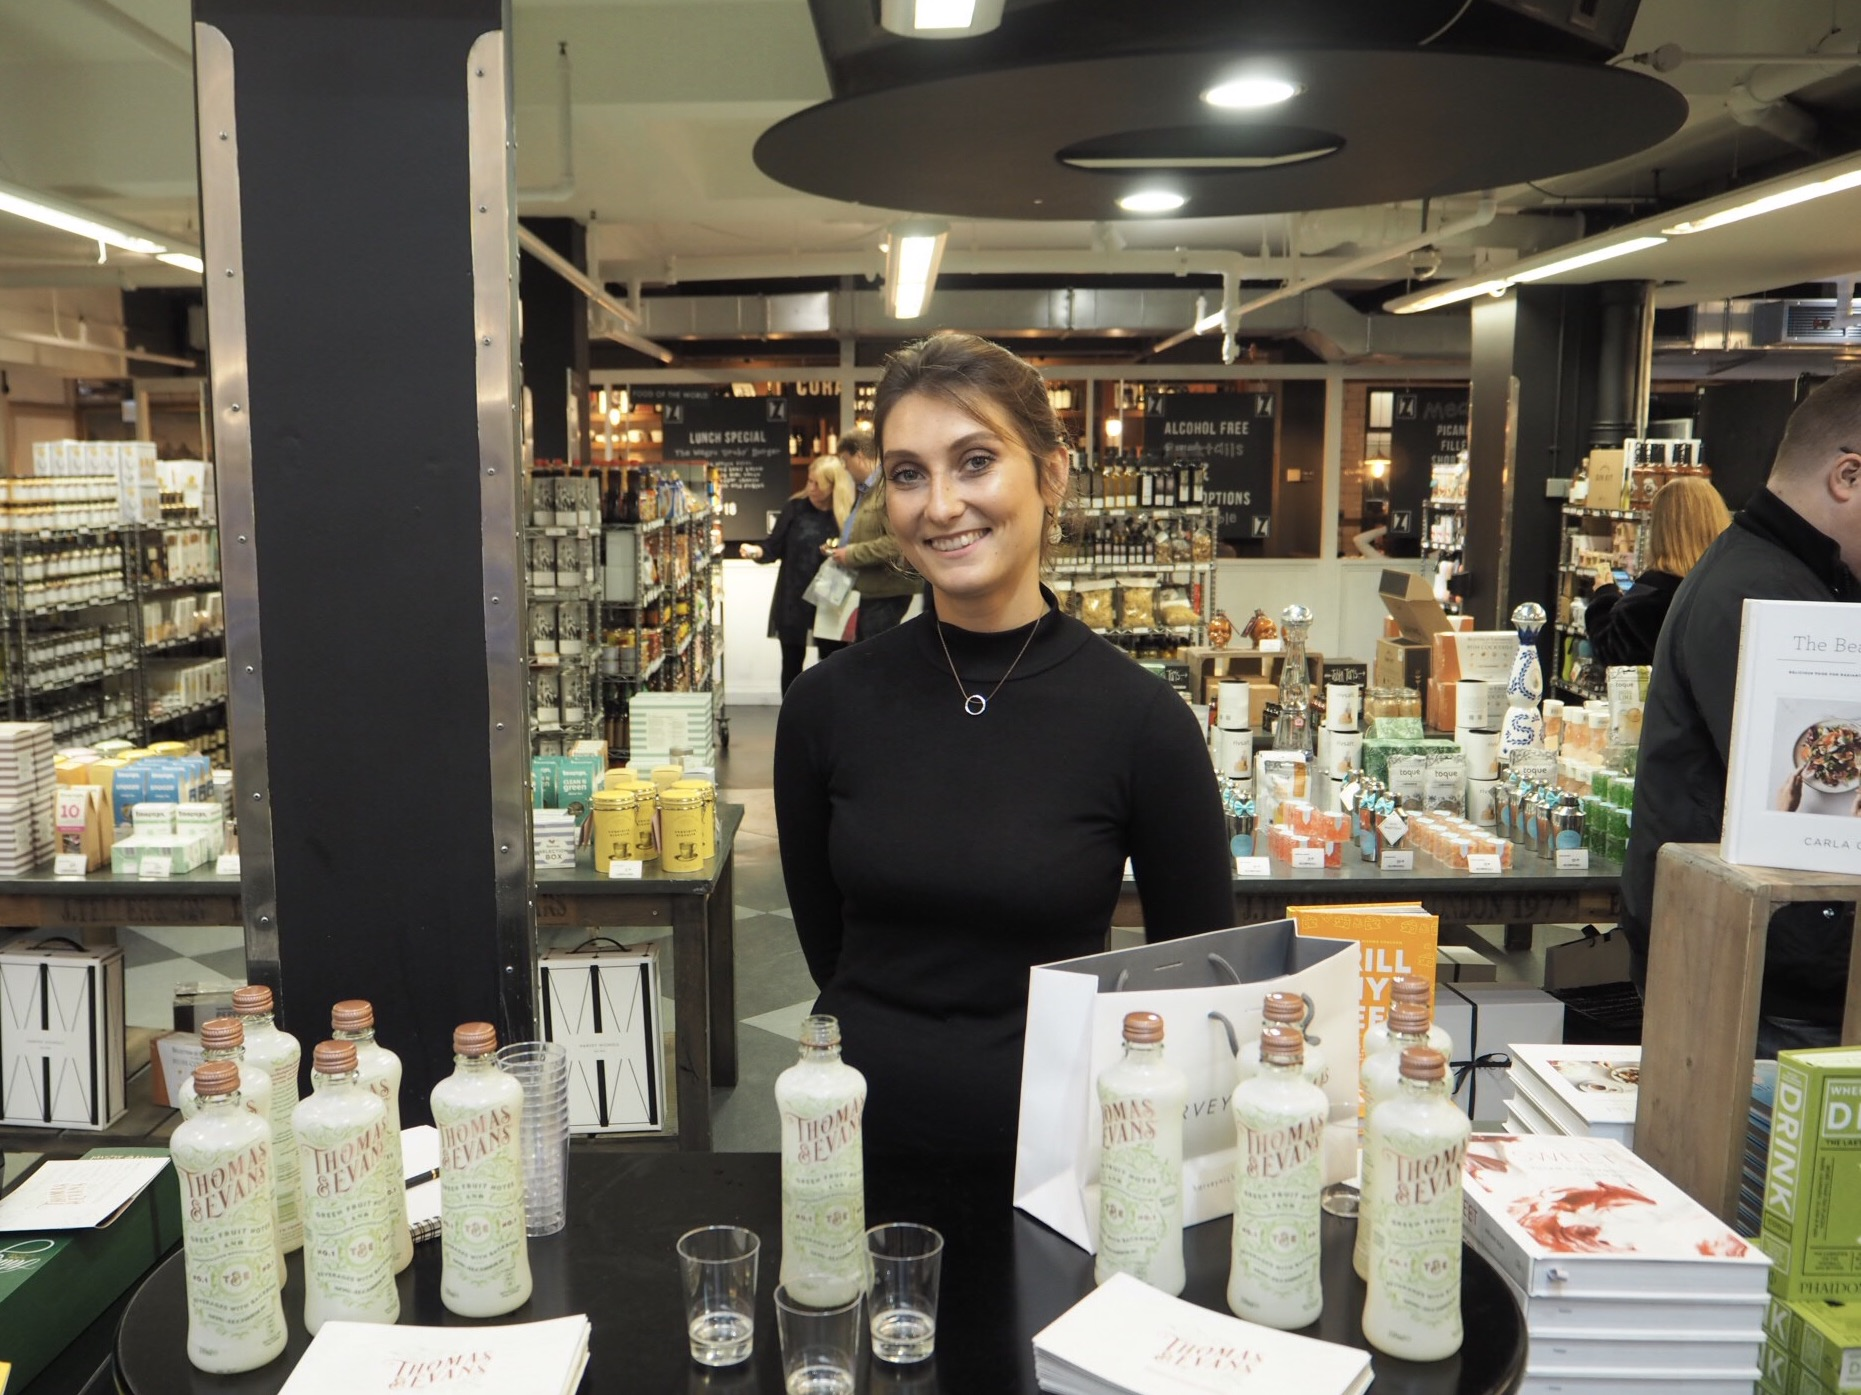 Thomas and Evans Sampling Harvey Nichols by Quirky Group